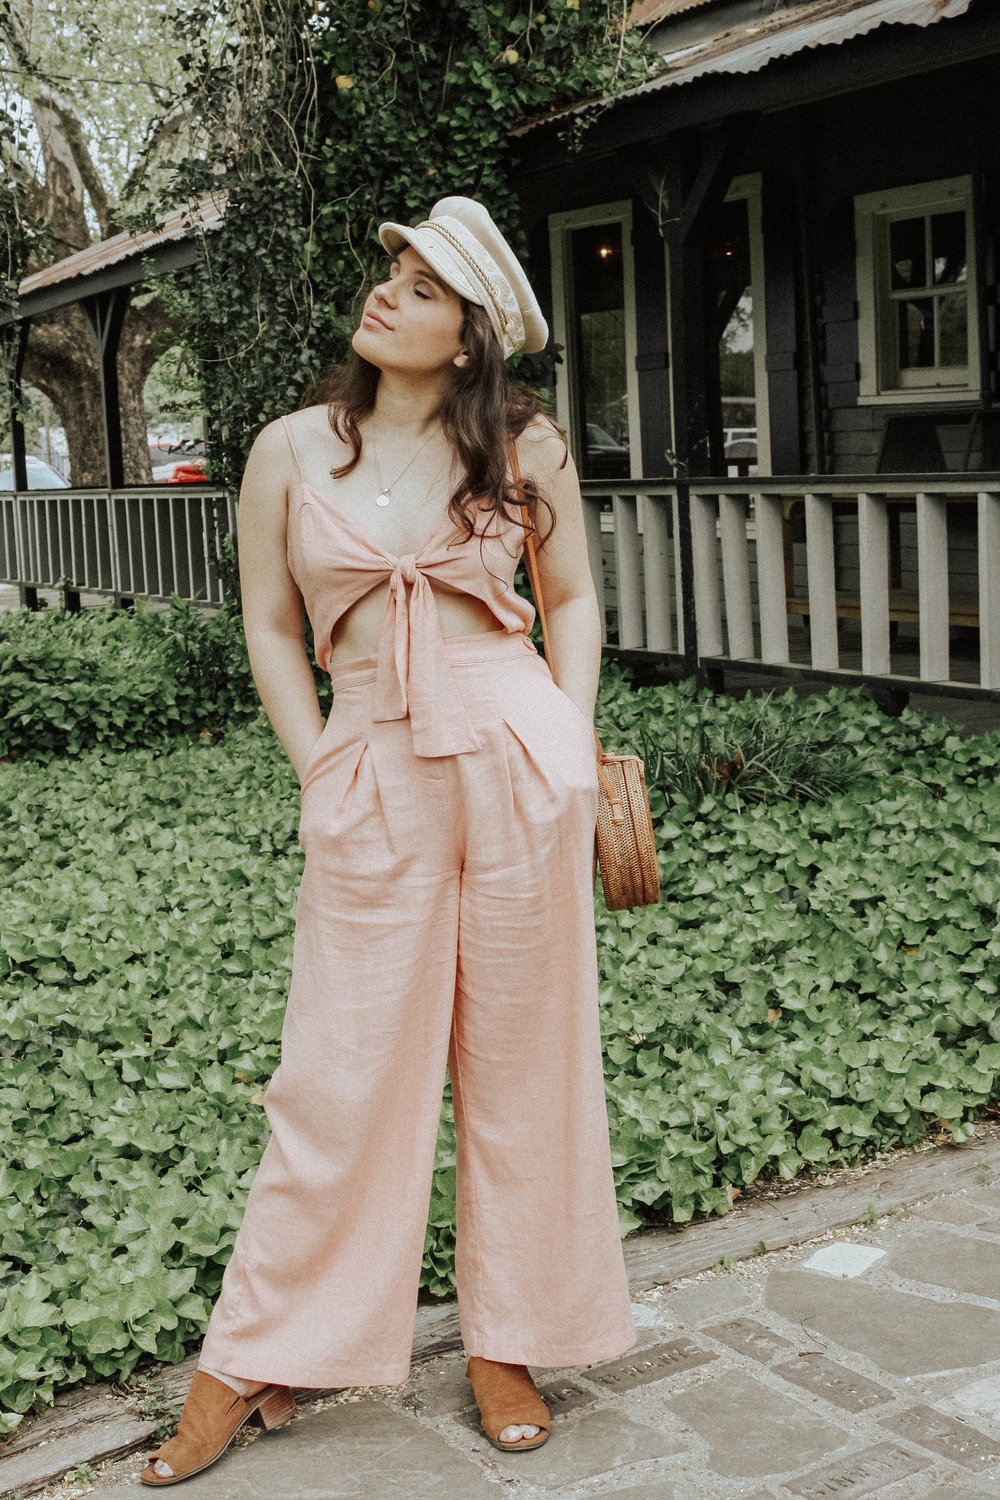 Jumpsuit: Moon River; Purse: Cleobella; Hat: Lack of Colors; Shoes: Steve Madden